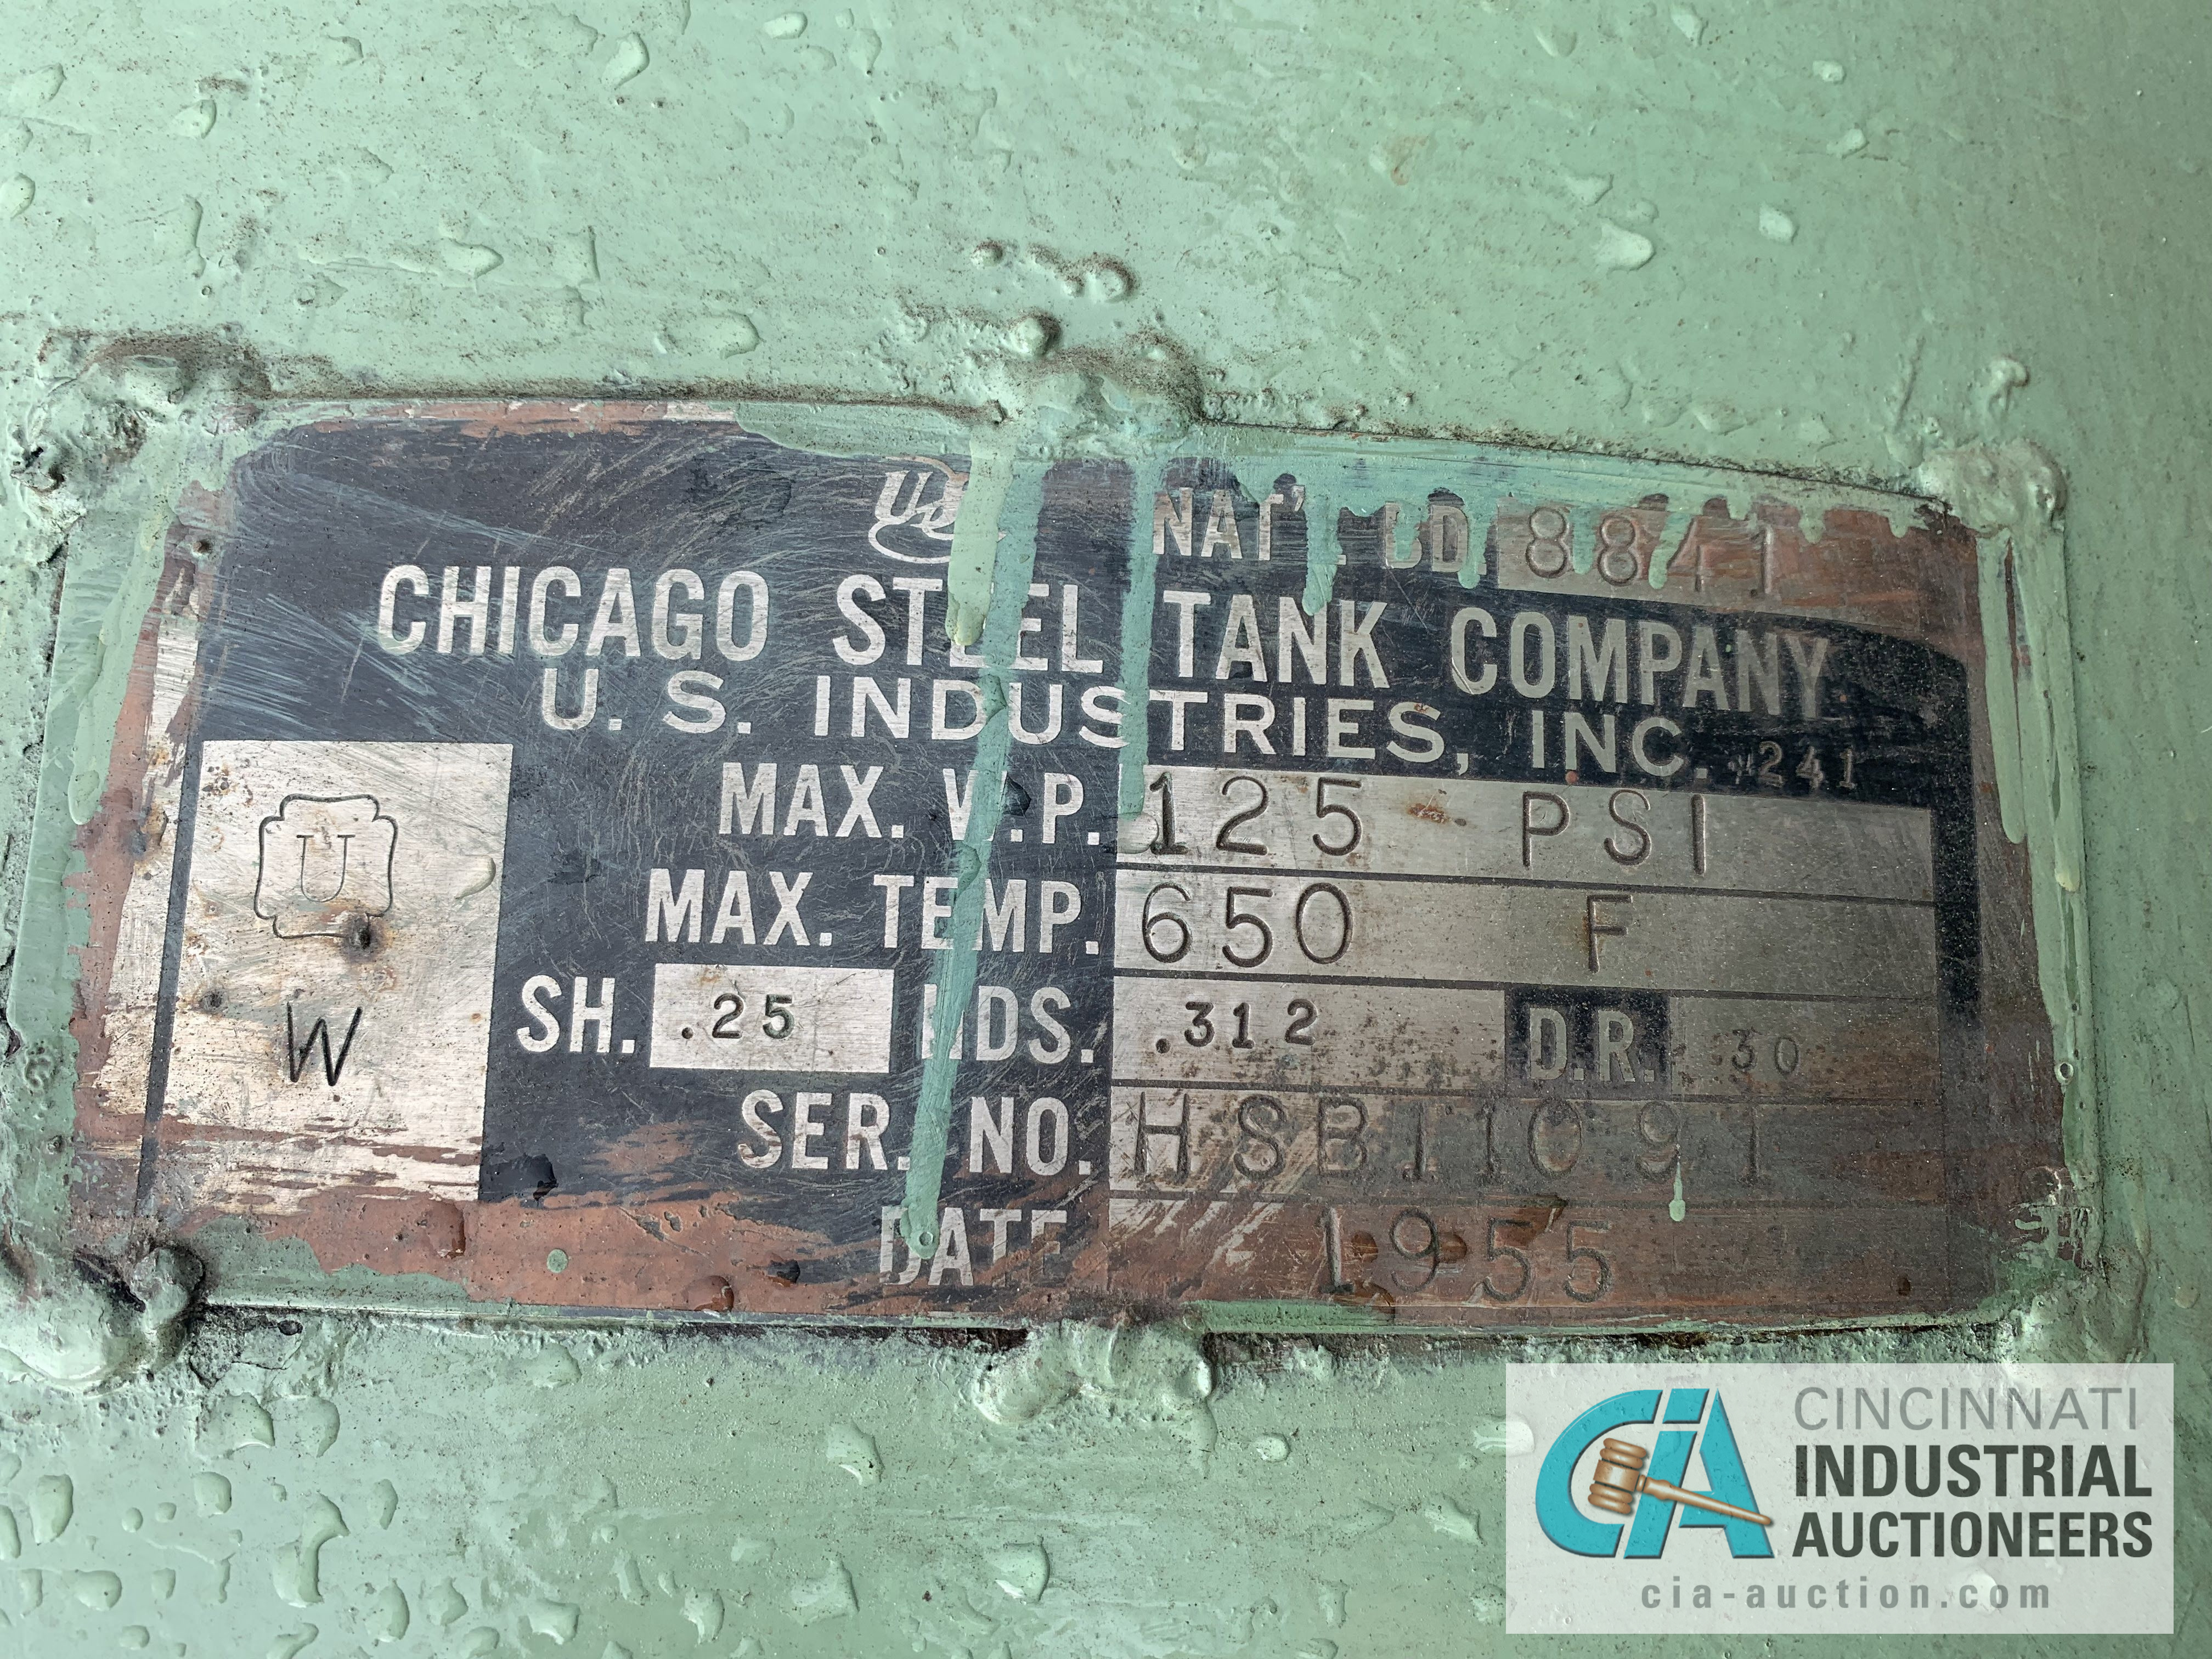 CHICAGO STEEL AIR TANK - $20.00 Rigging Fee Due to Onsite Rigger - Located in Holland, Ohio - Image 3 of 3